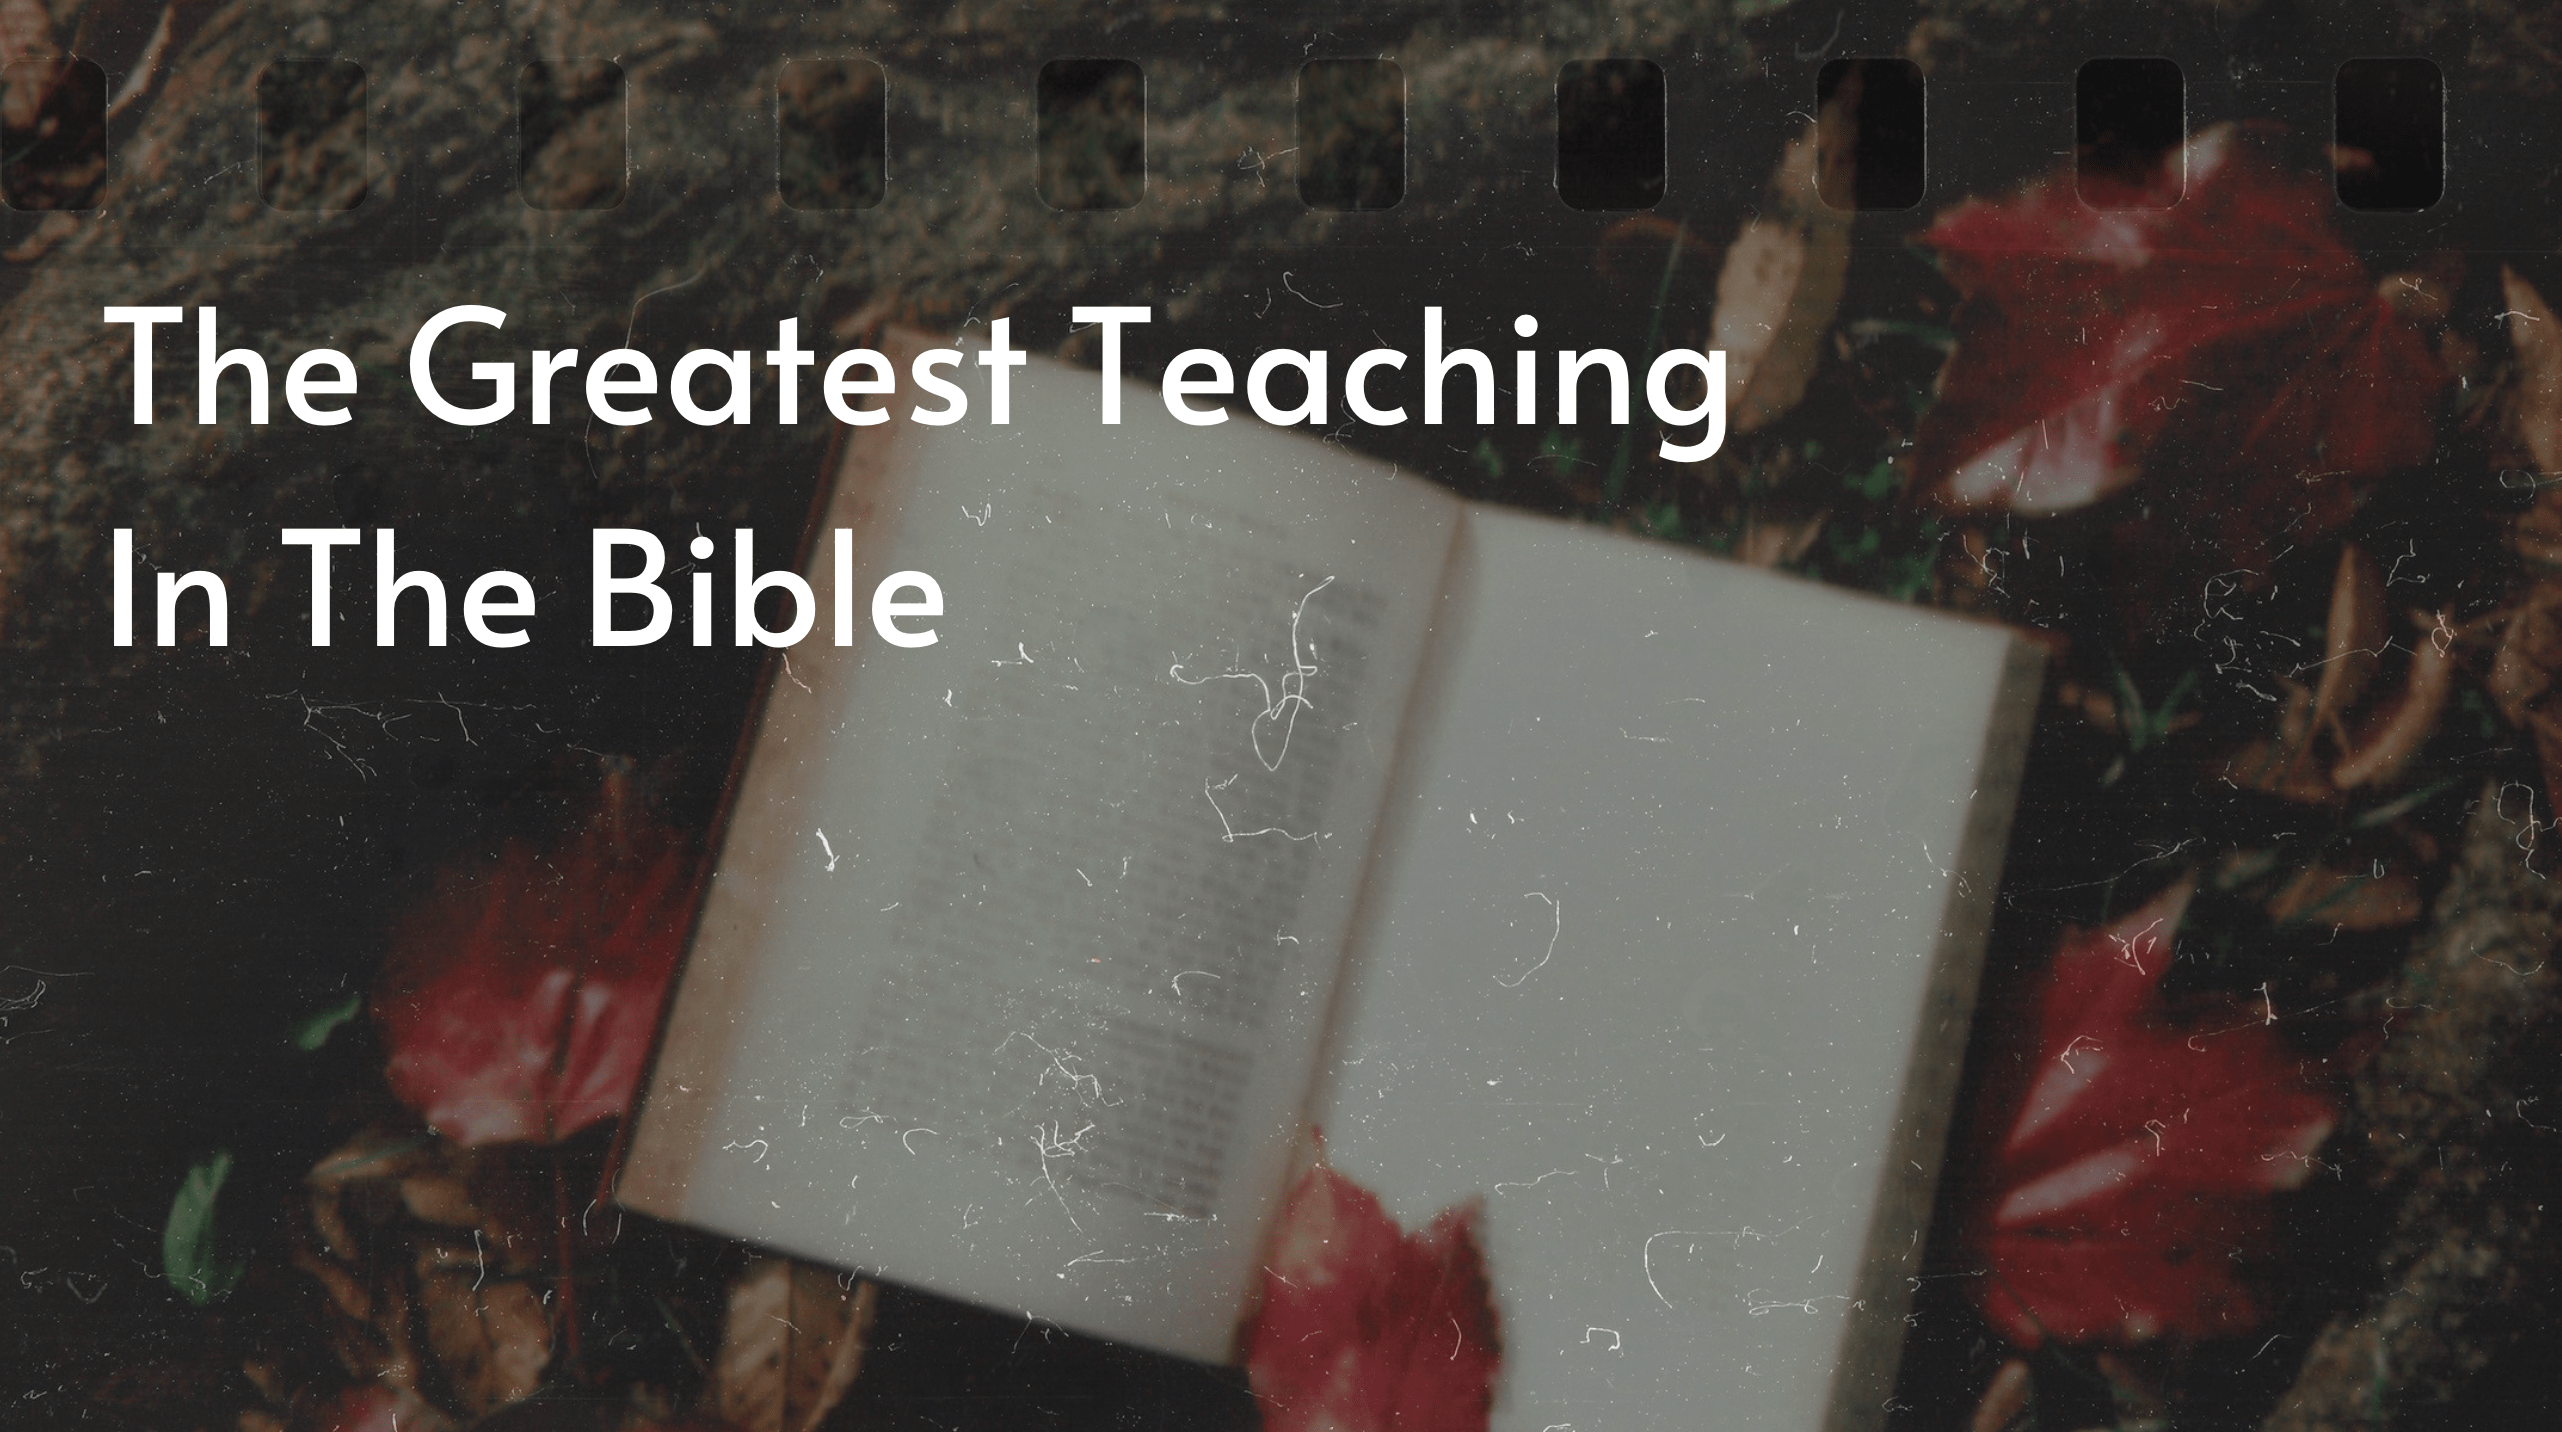 The Greatest Teaching In The Bible